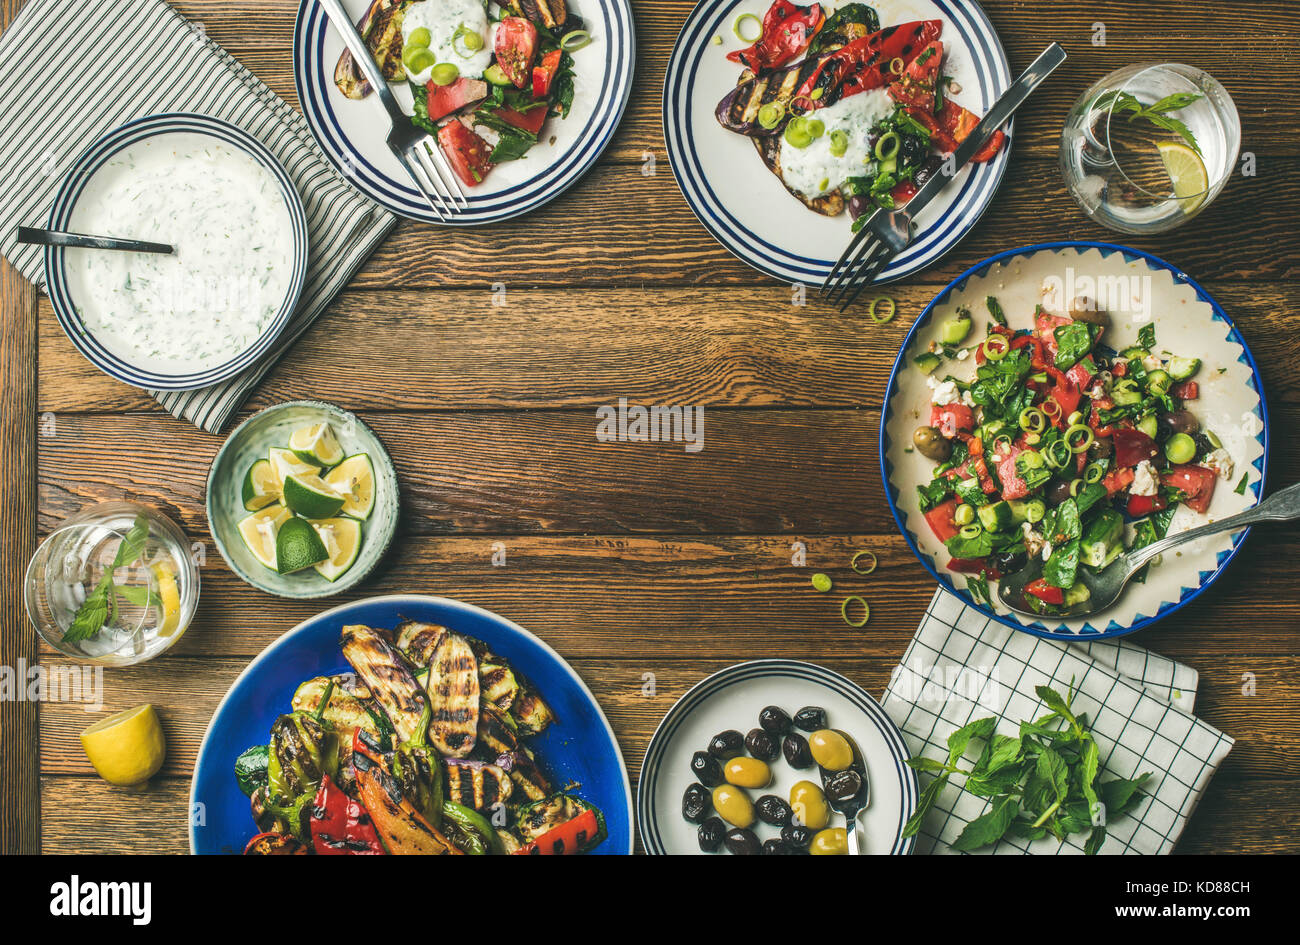 Flat-lay of healthy dinner table setting. Fresh salad, grilled vegetables with yogurt sauce, pickled olives over - Stock Image